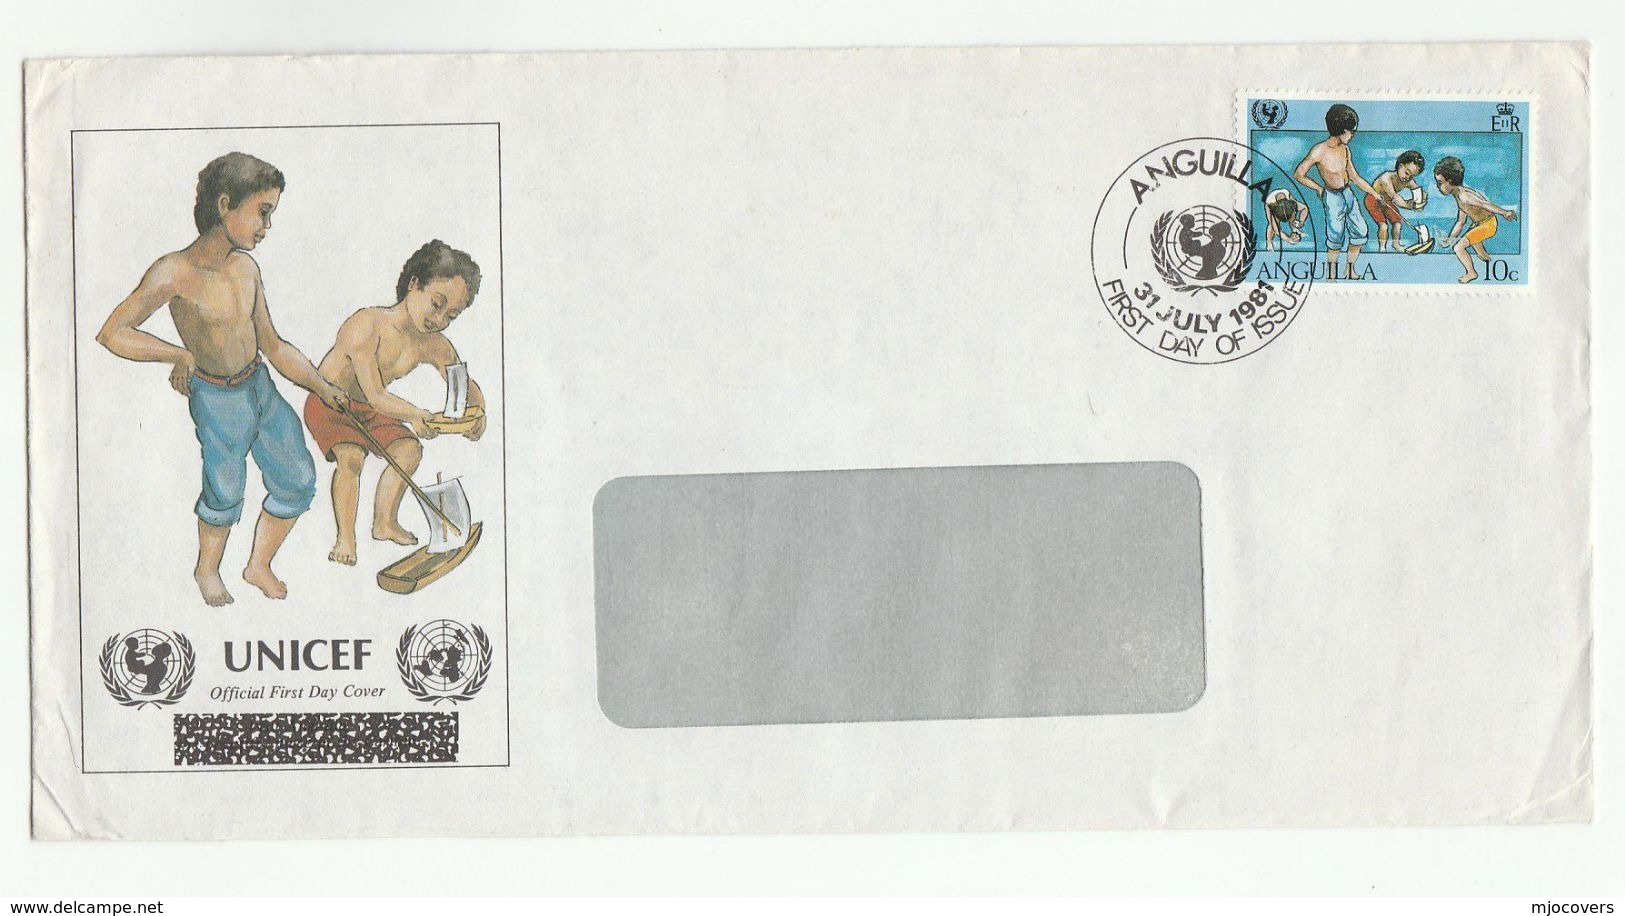 1981 ANGUILLA FDC Stamps UNICEF Un United Nations Cover - UNICEF